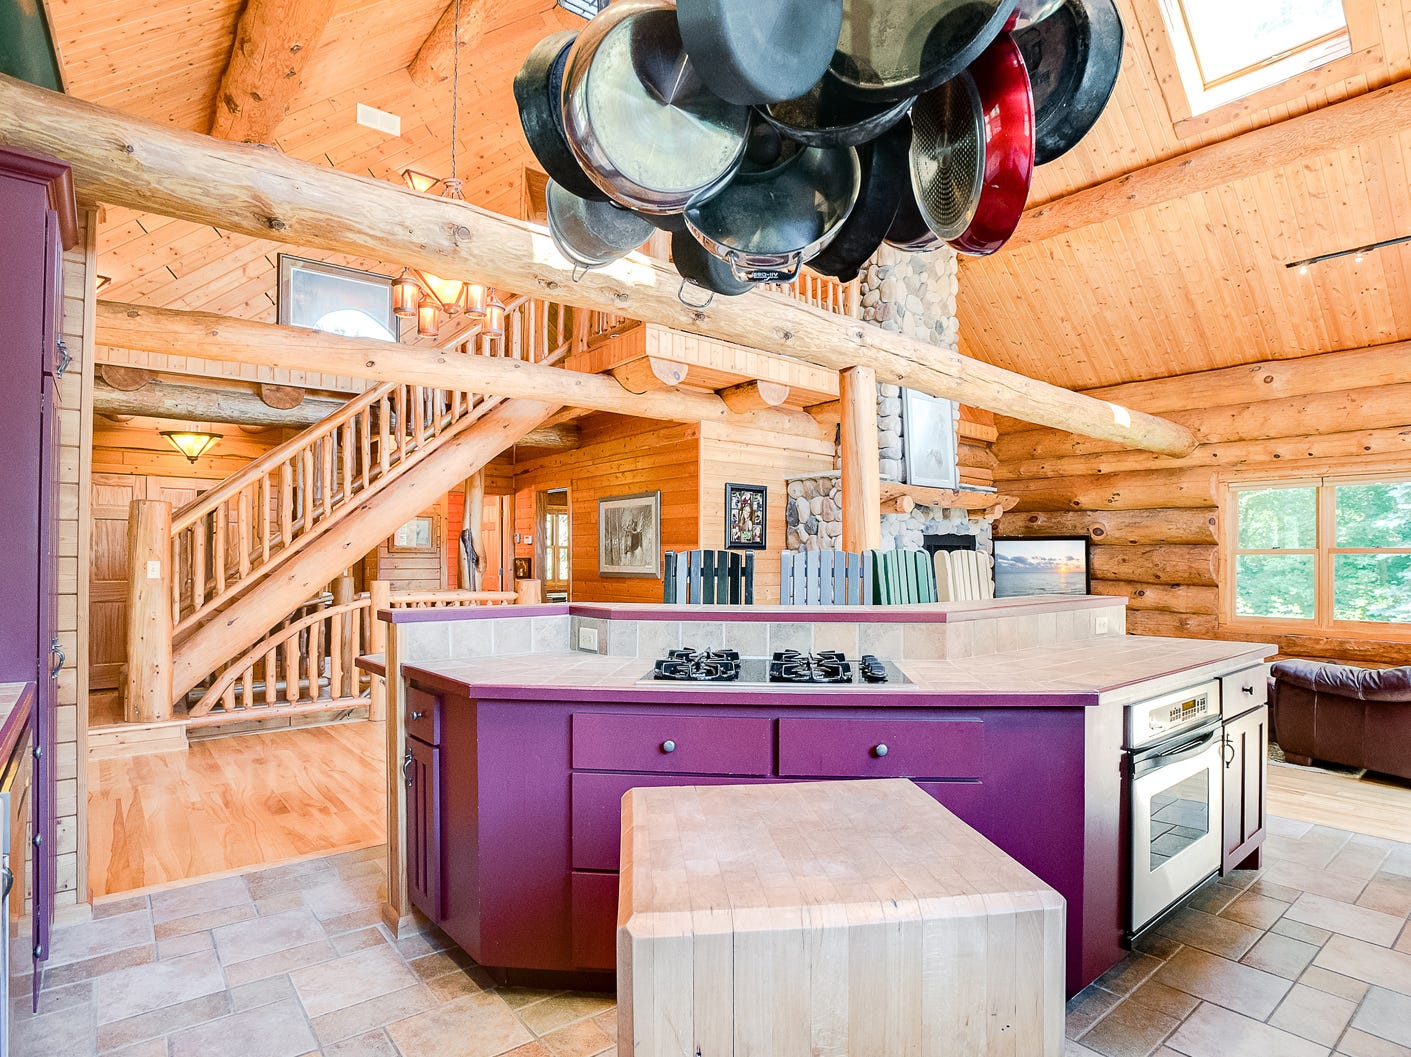 The kitchen is large and open. With its farmhouse sink and cooktop in the island, it allows for easy prep work while visiting with guests and family.